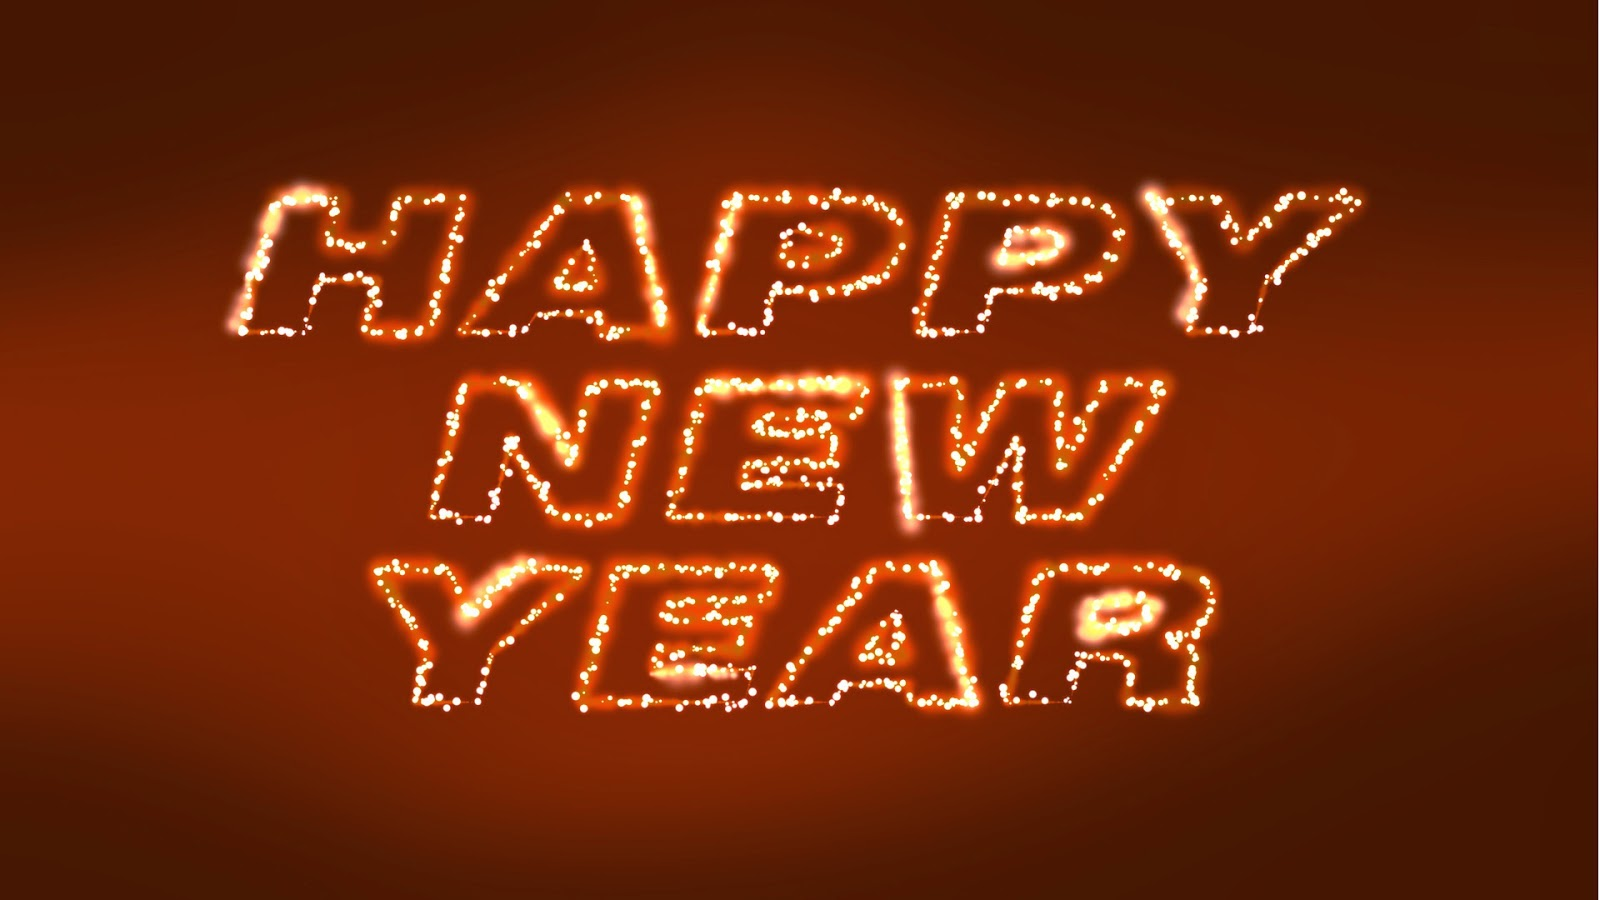 Happy New Year Wallpapers HD download 1600x900